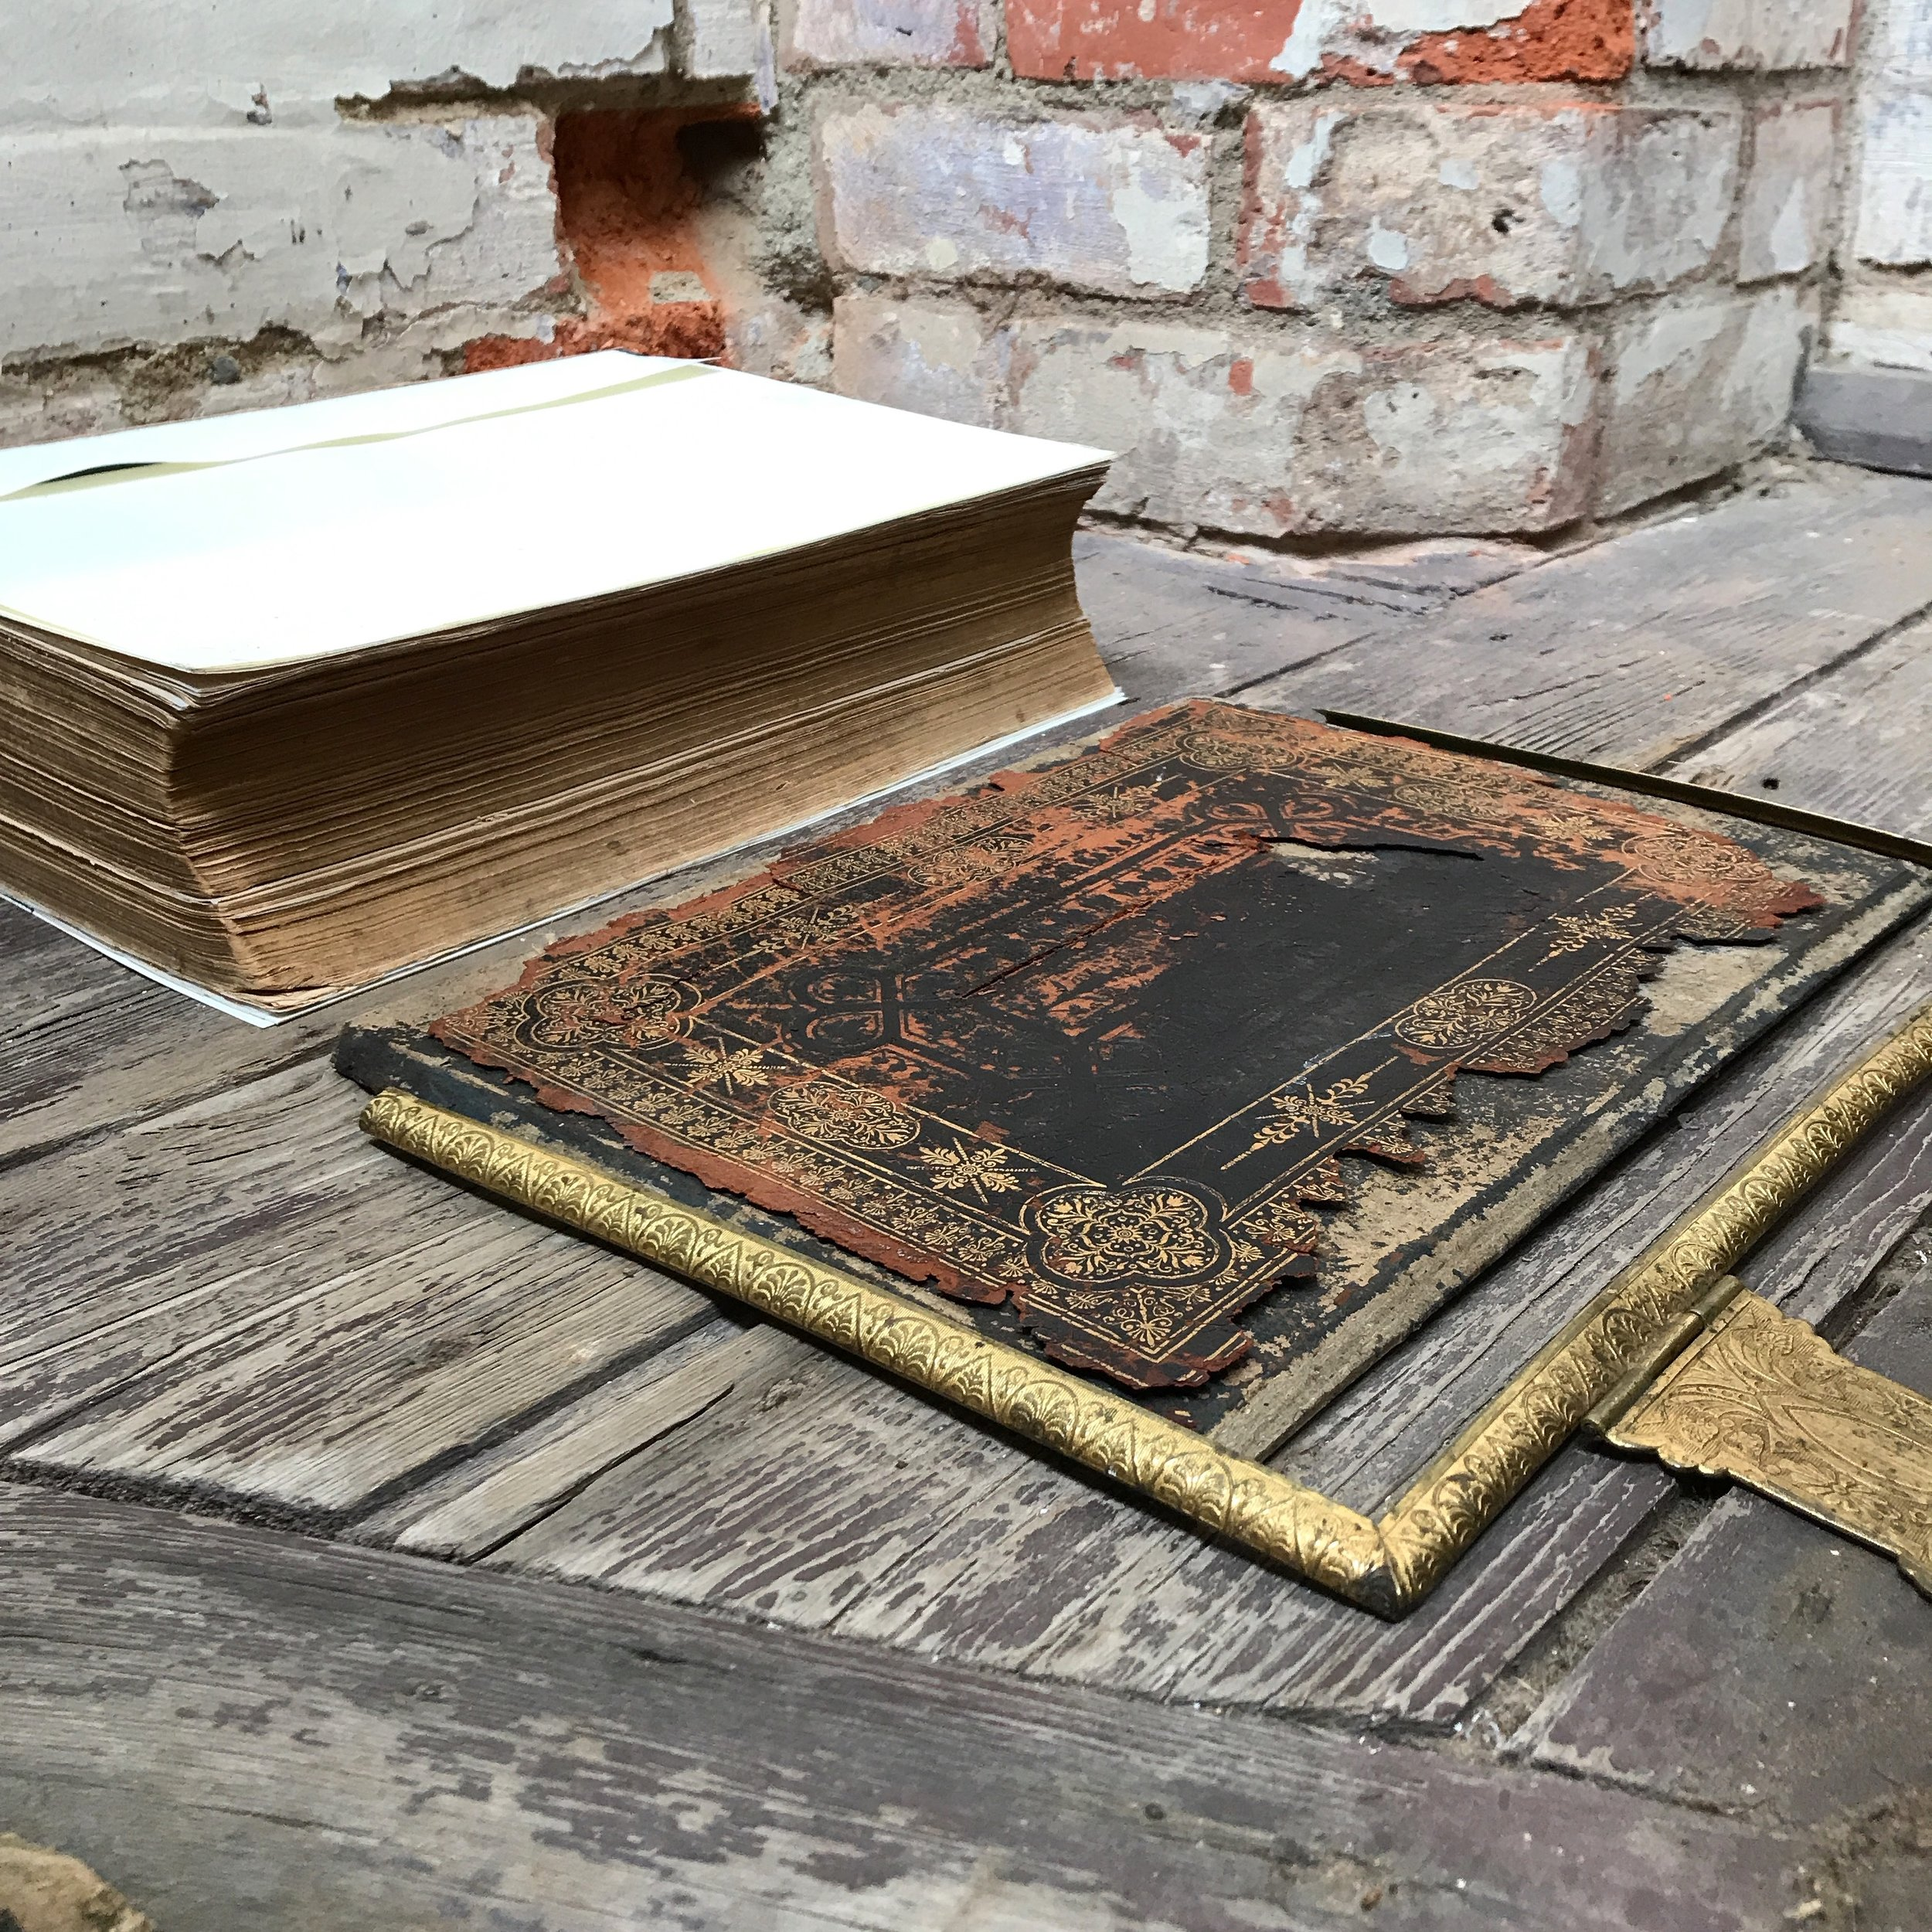 Victorian Bible - Before restoration